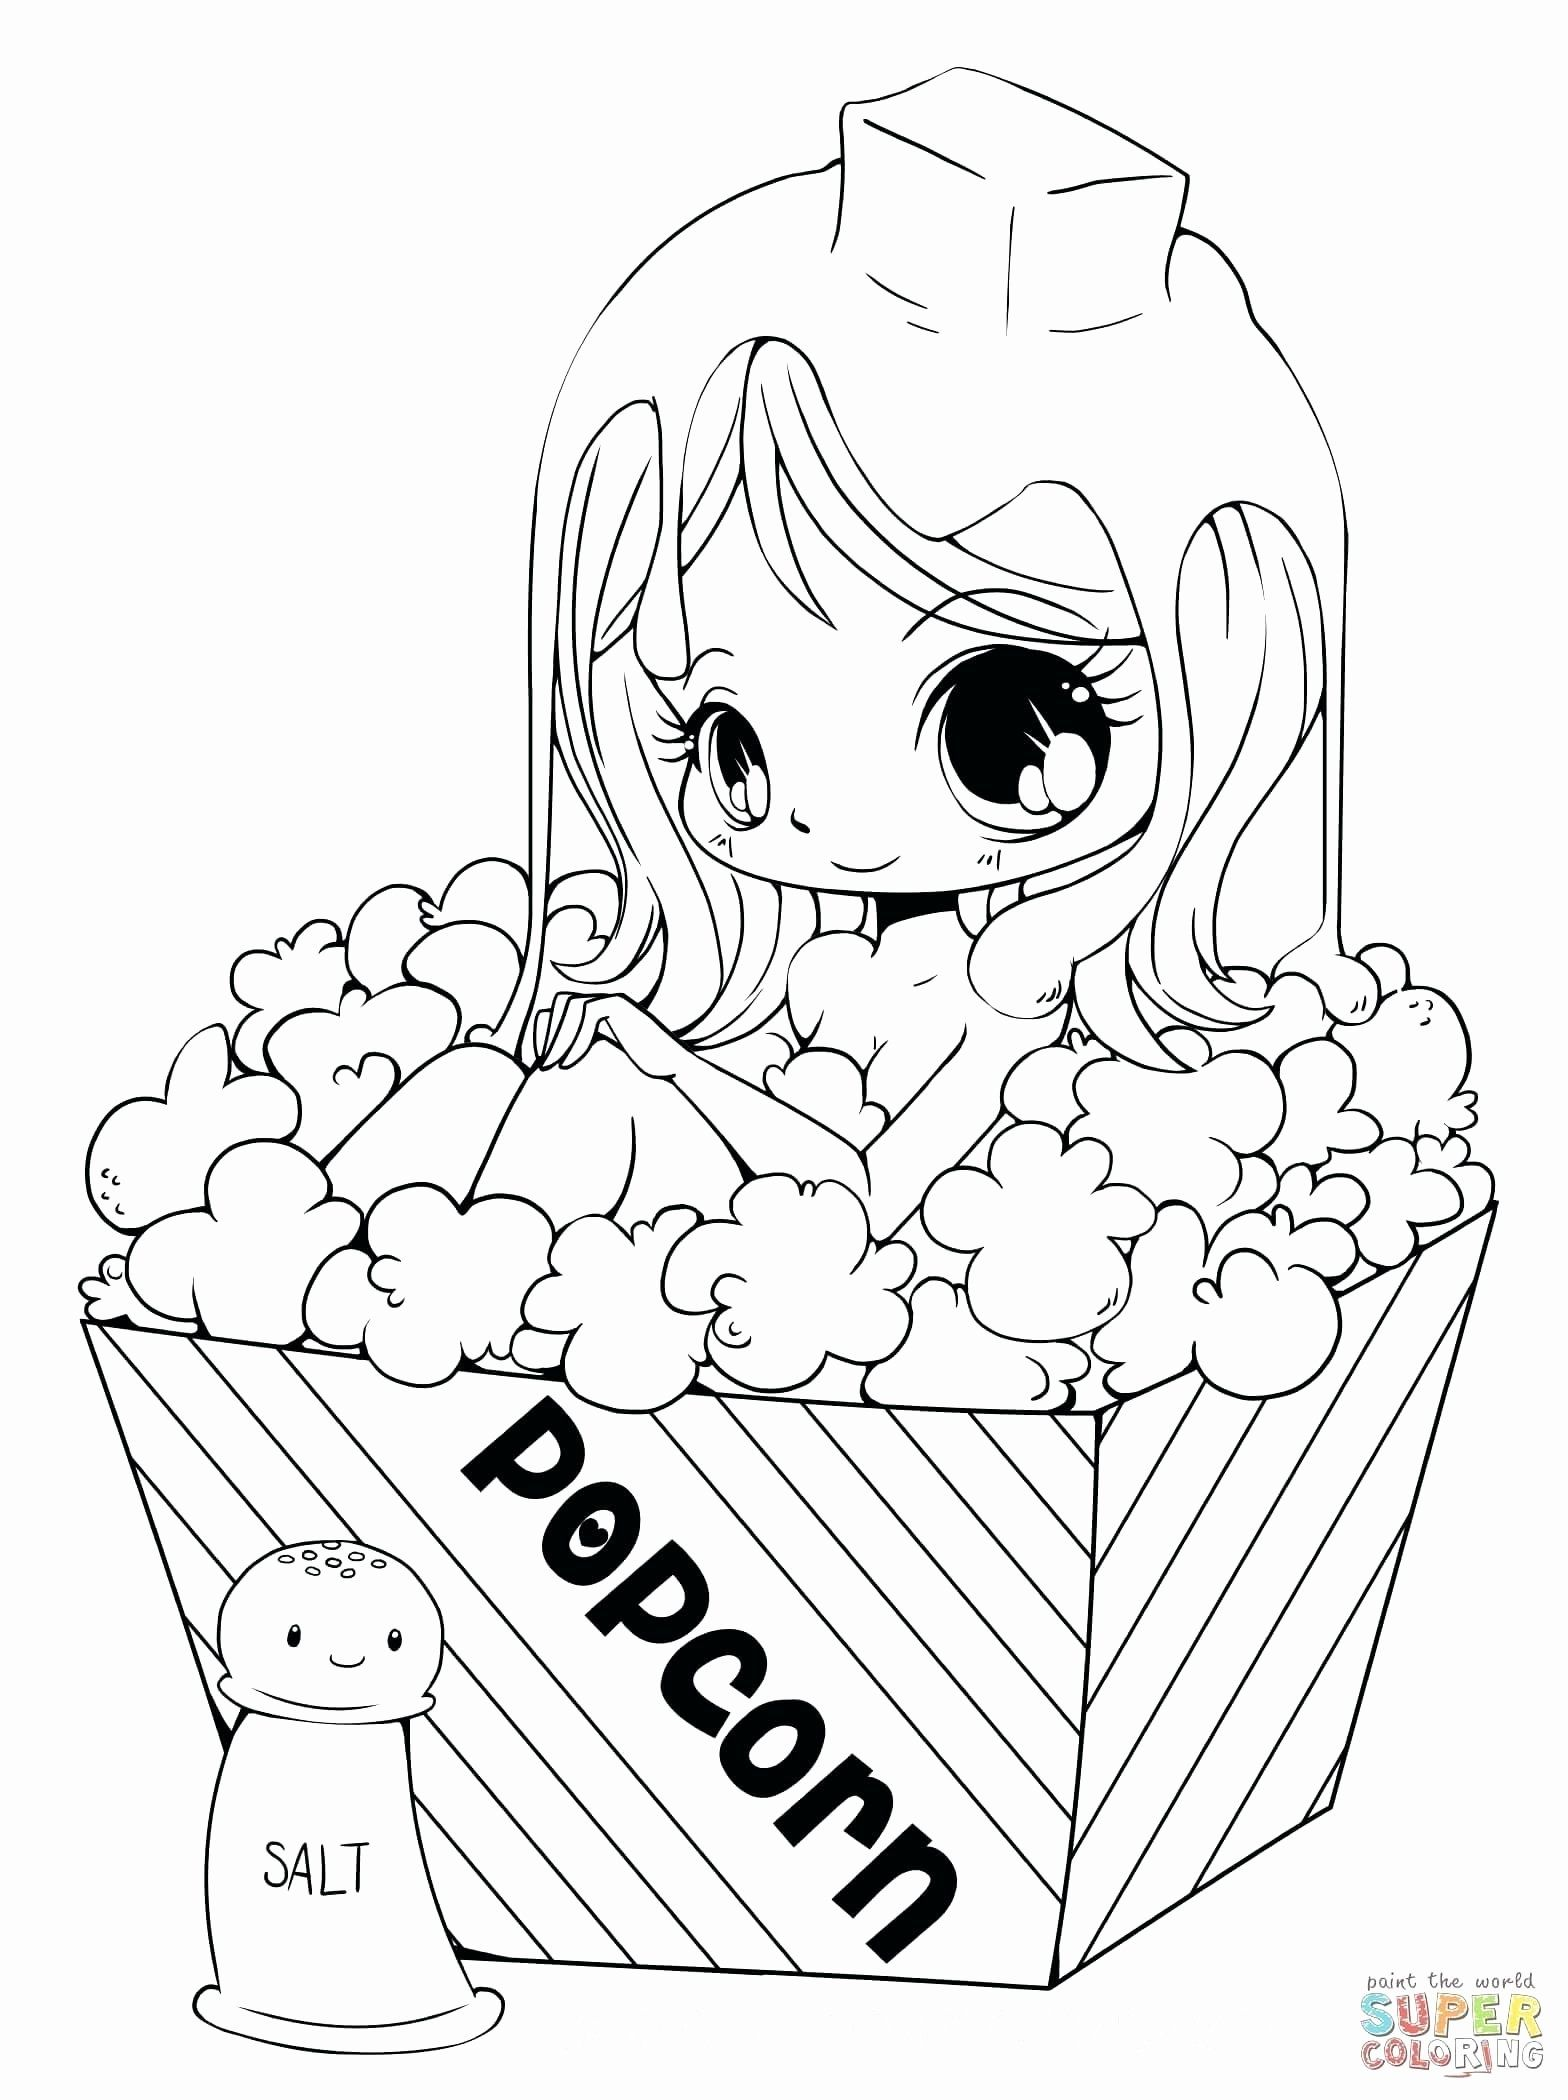 Interactive Coloring Pages For Adults Unique Coloring Pages Coloring Book Anime Navajosheet C Chibi Coloring Pages Princess Coloring Pages Witch Coloring Pages